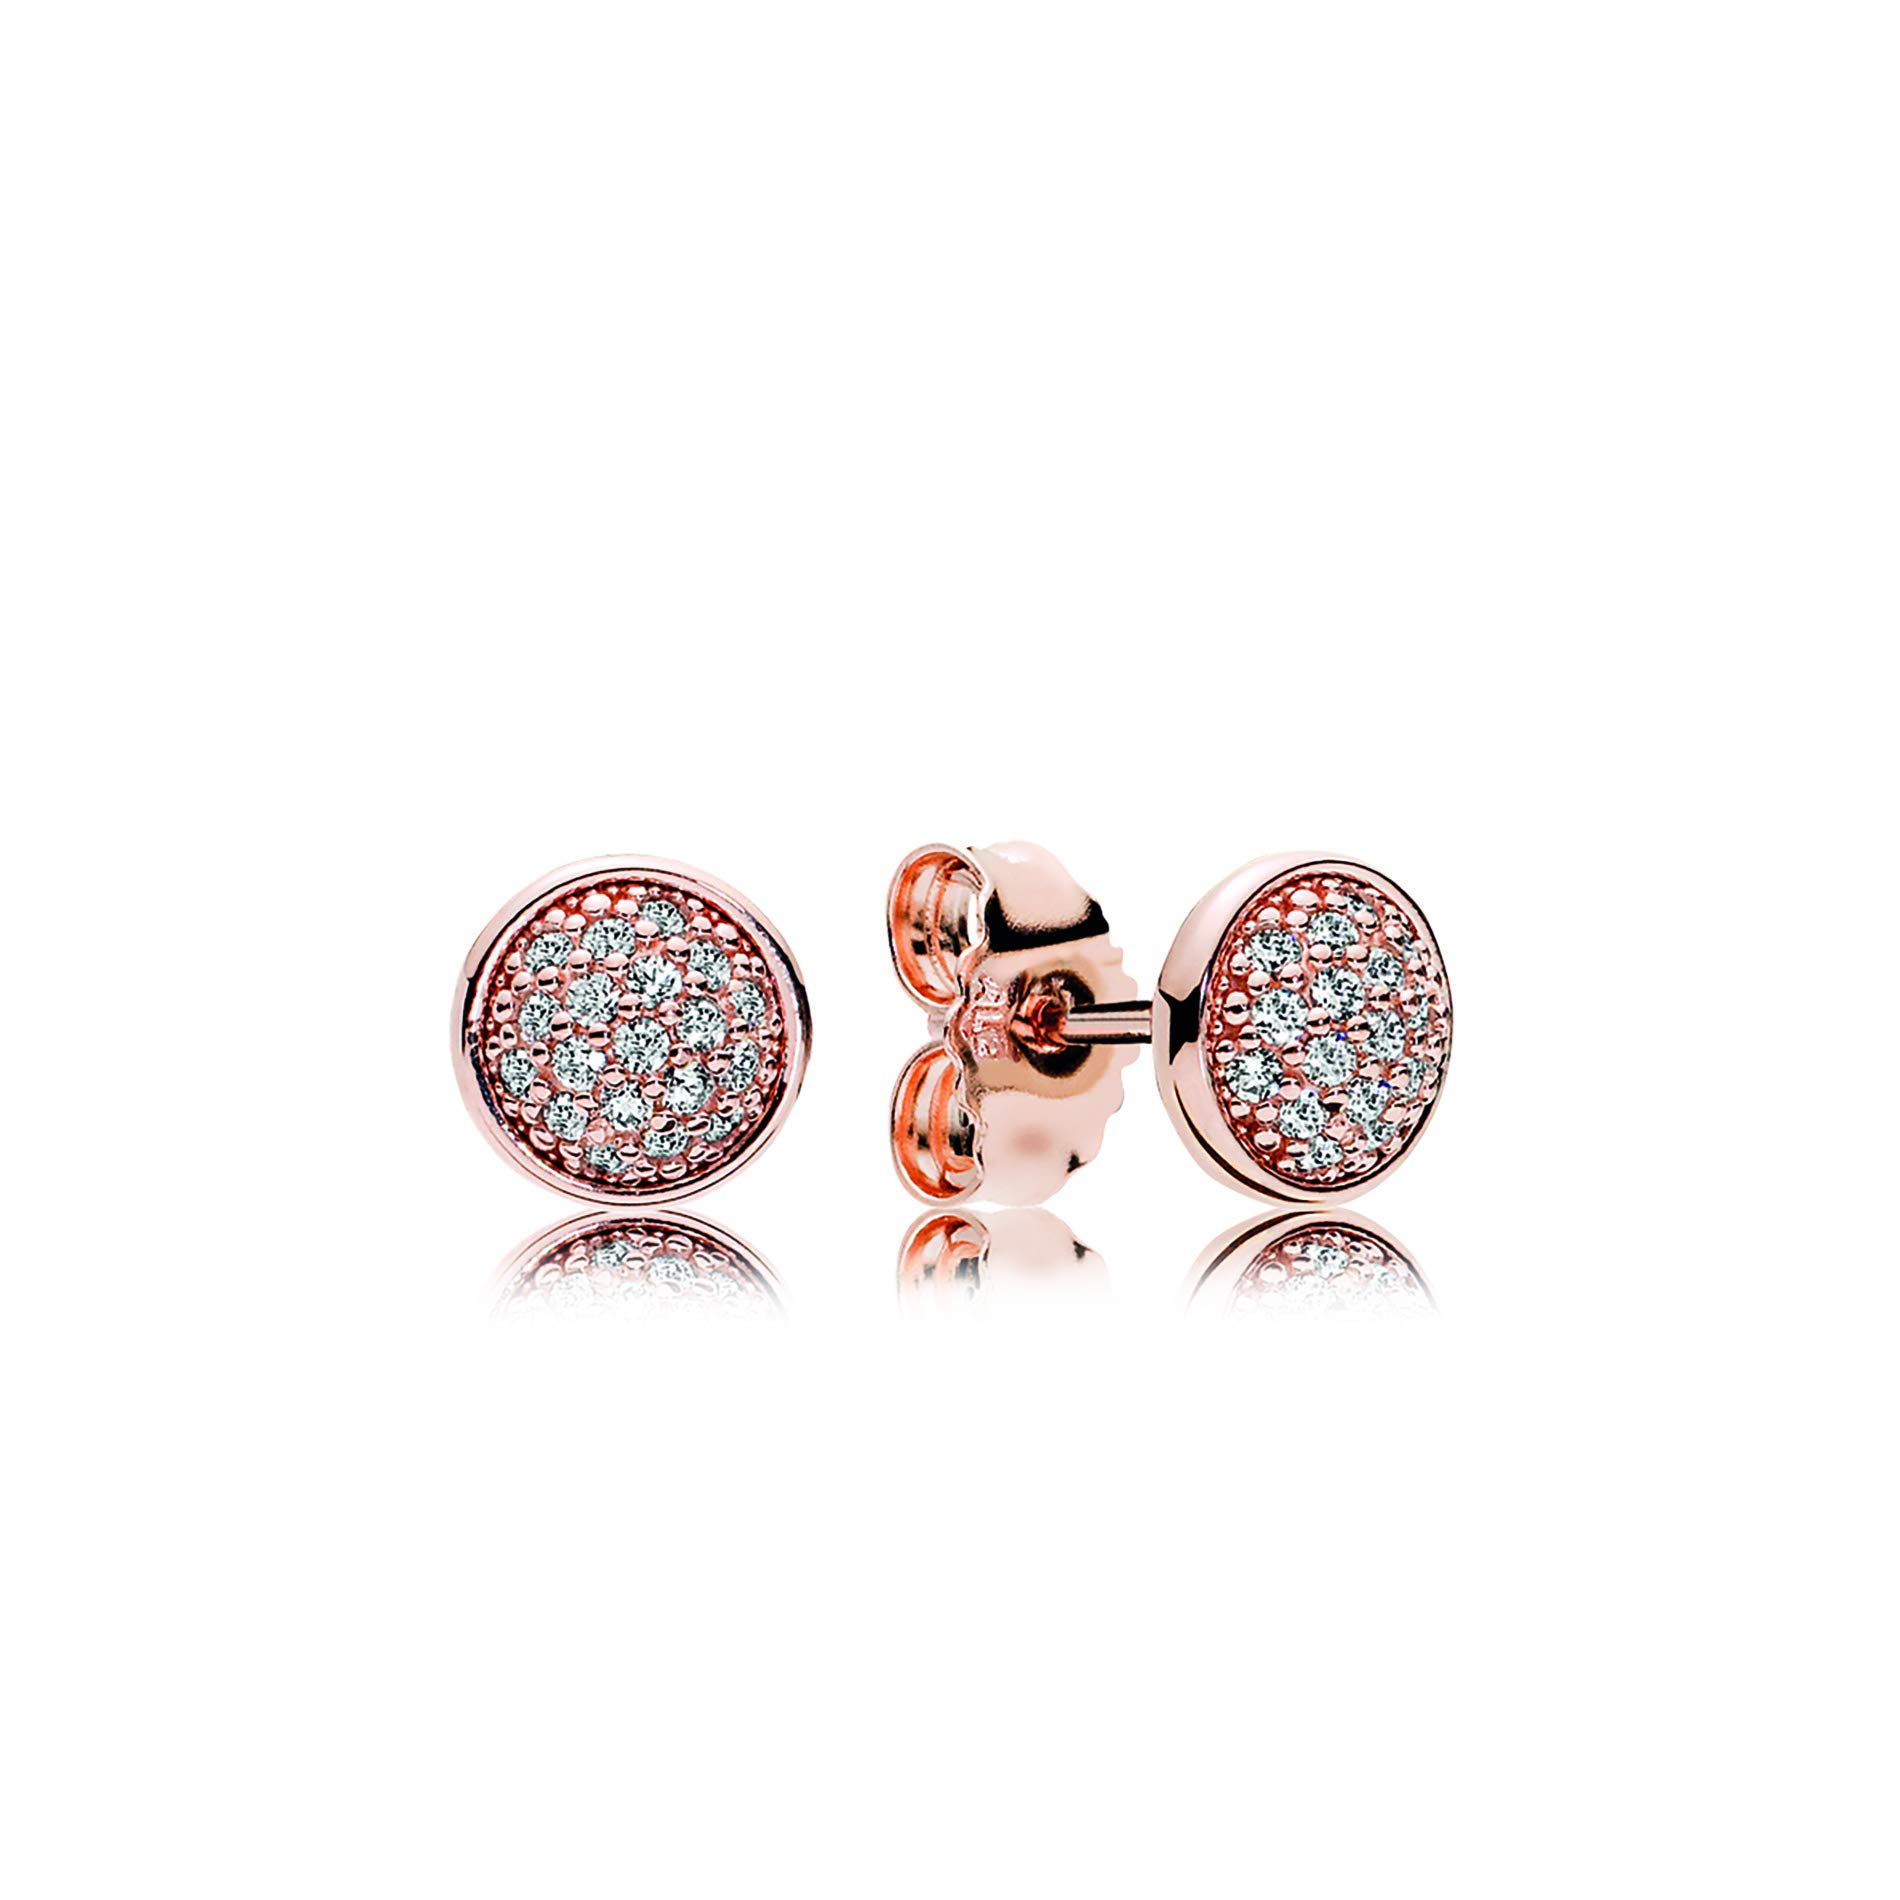 PANDORA-Stud-Earrings-in-PANDORA-Rose-with-38-Bead-Set-Clear-Cubic-Zirconia-280726CZ